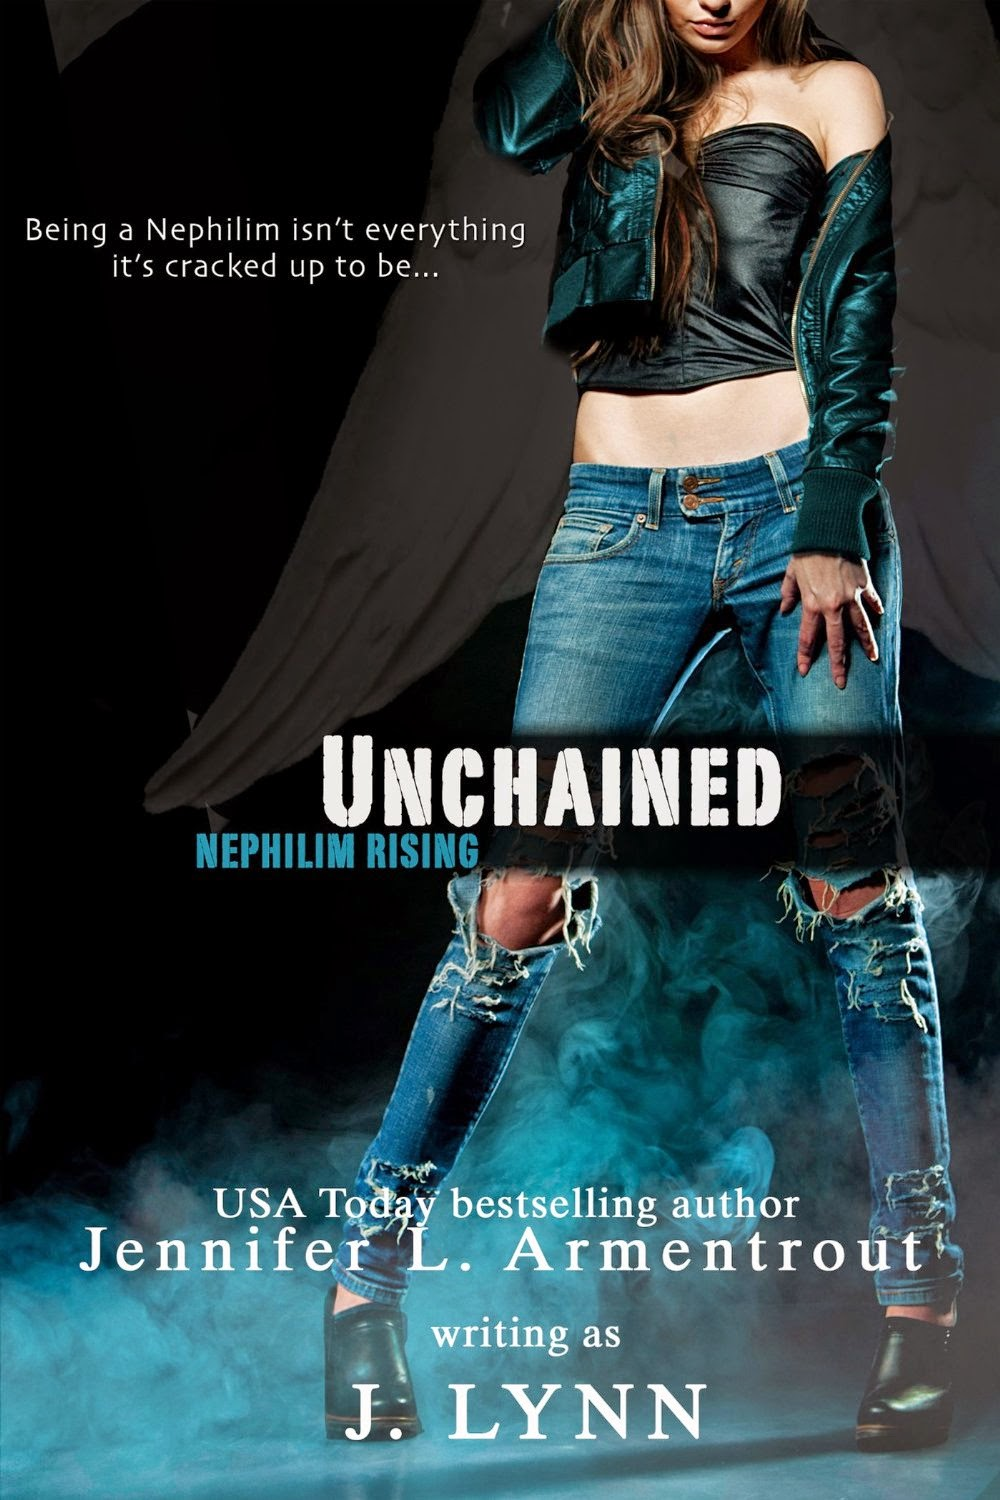 http://lachroniquedespassions.blogspot.fr/2014/10/nephilim-rising-tome-1-unchained.html